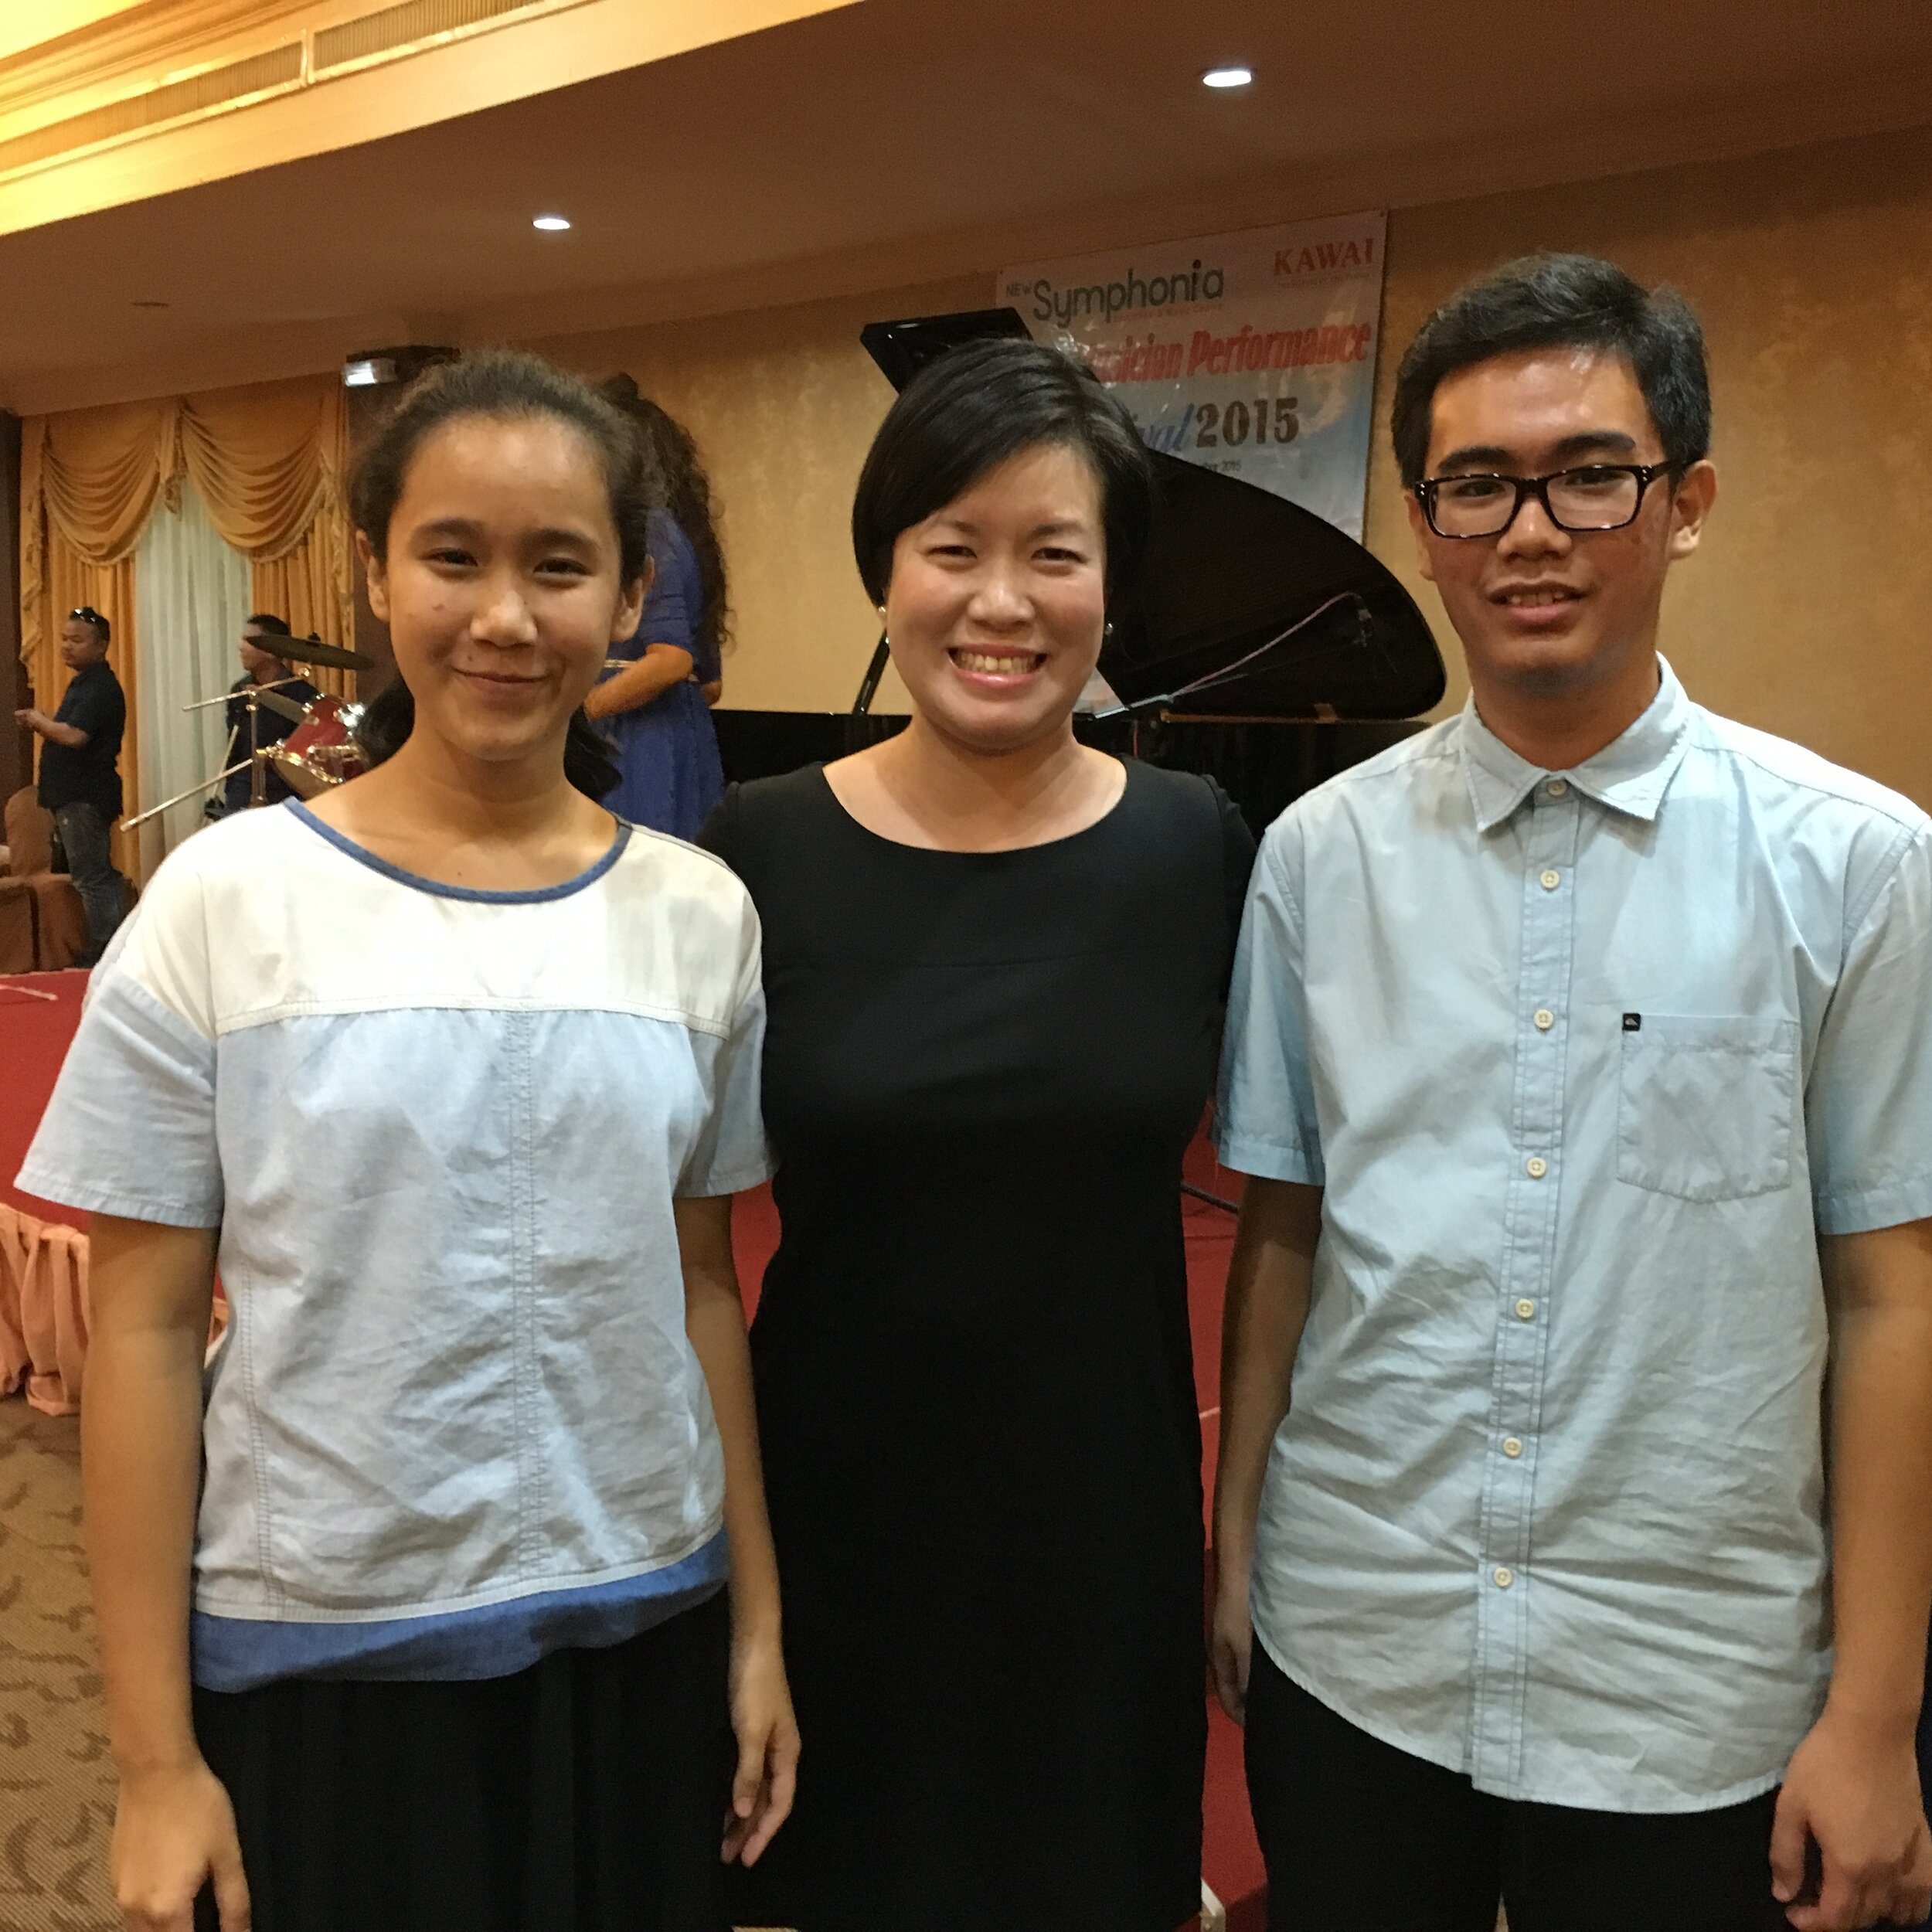 Gillian with 2 participants at Symphonia - Young Musicians Performance Festival